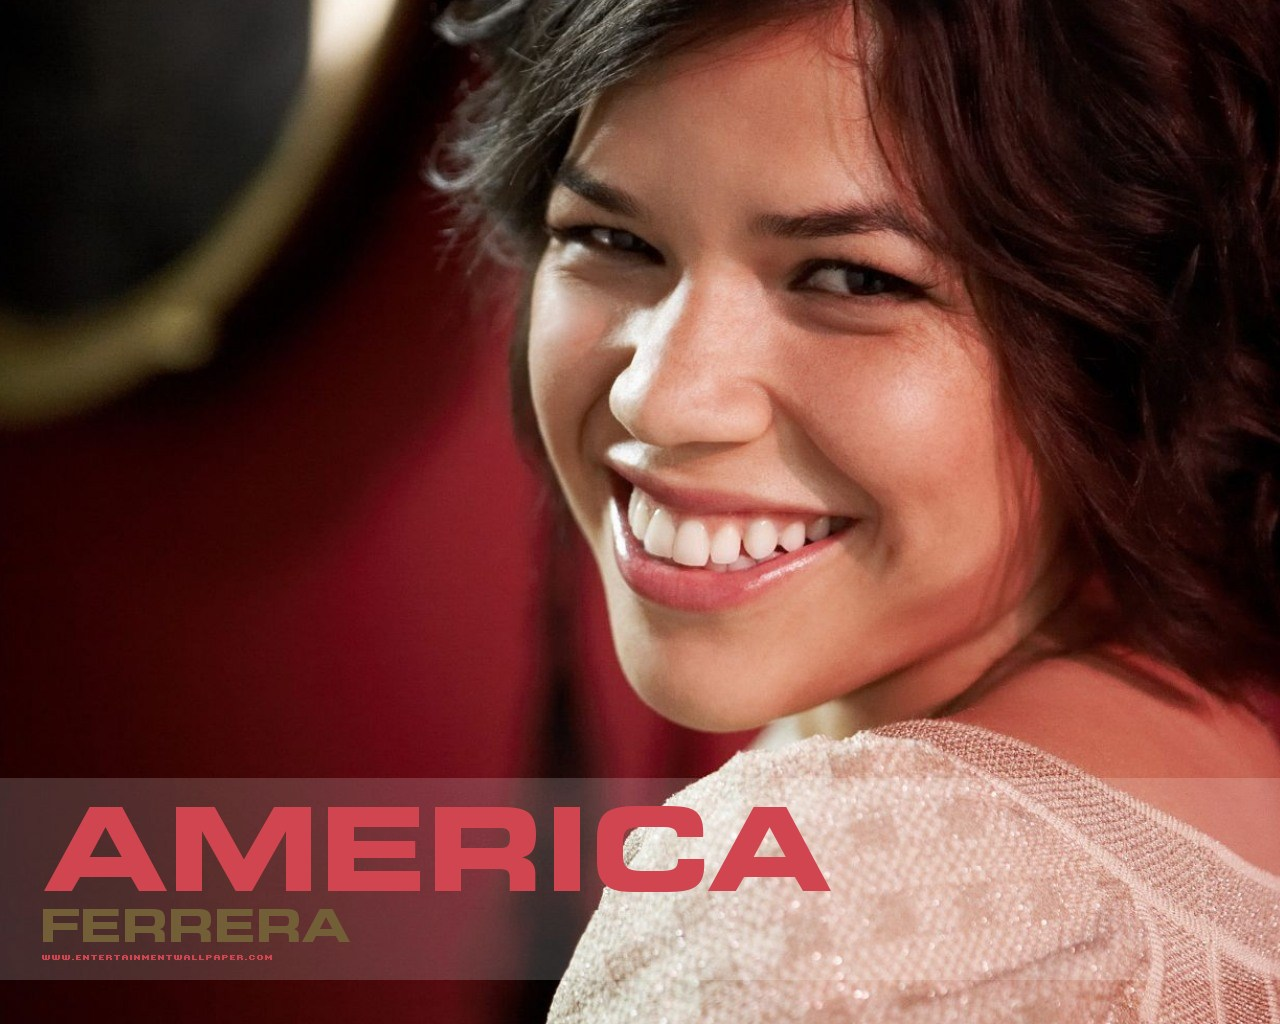 America Ferrera - Wallpaper Actress